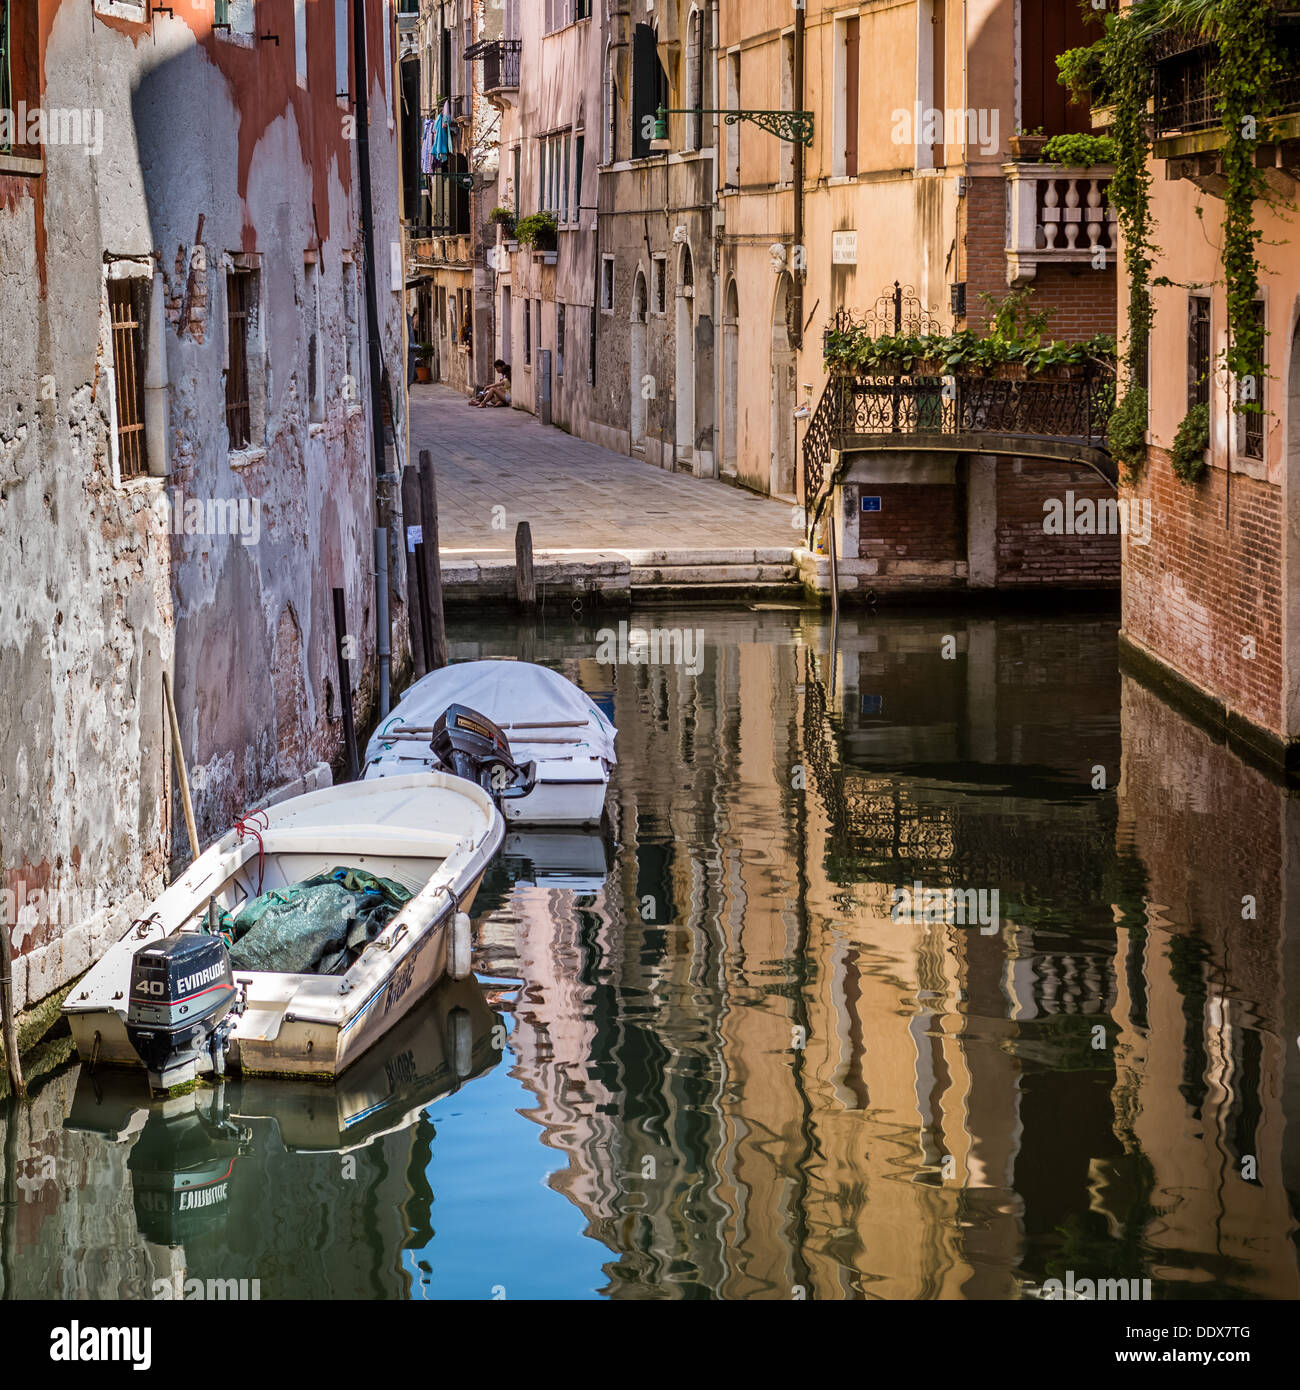 Typical venetian canal with the historic buildings reflected in the water - Stock Image